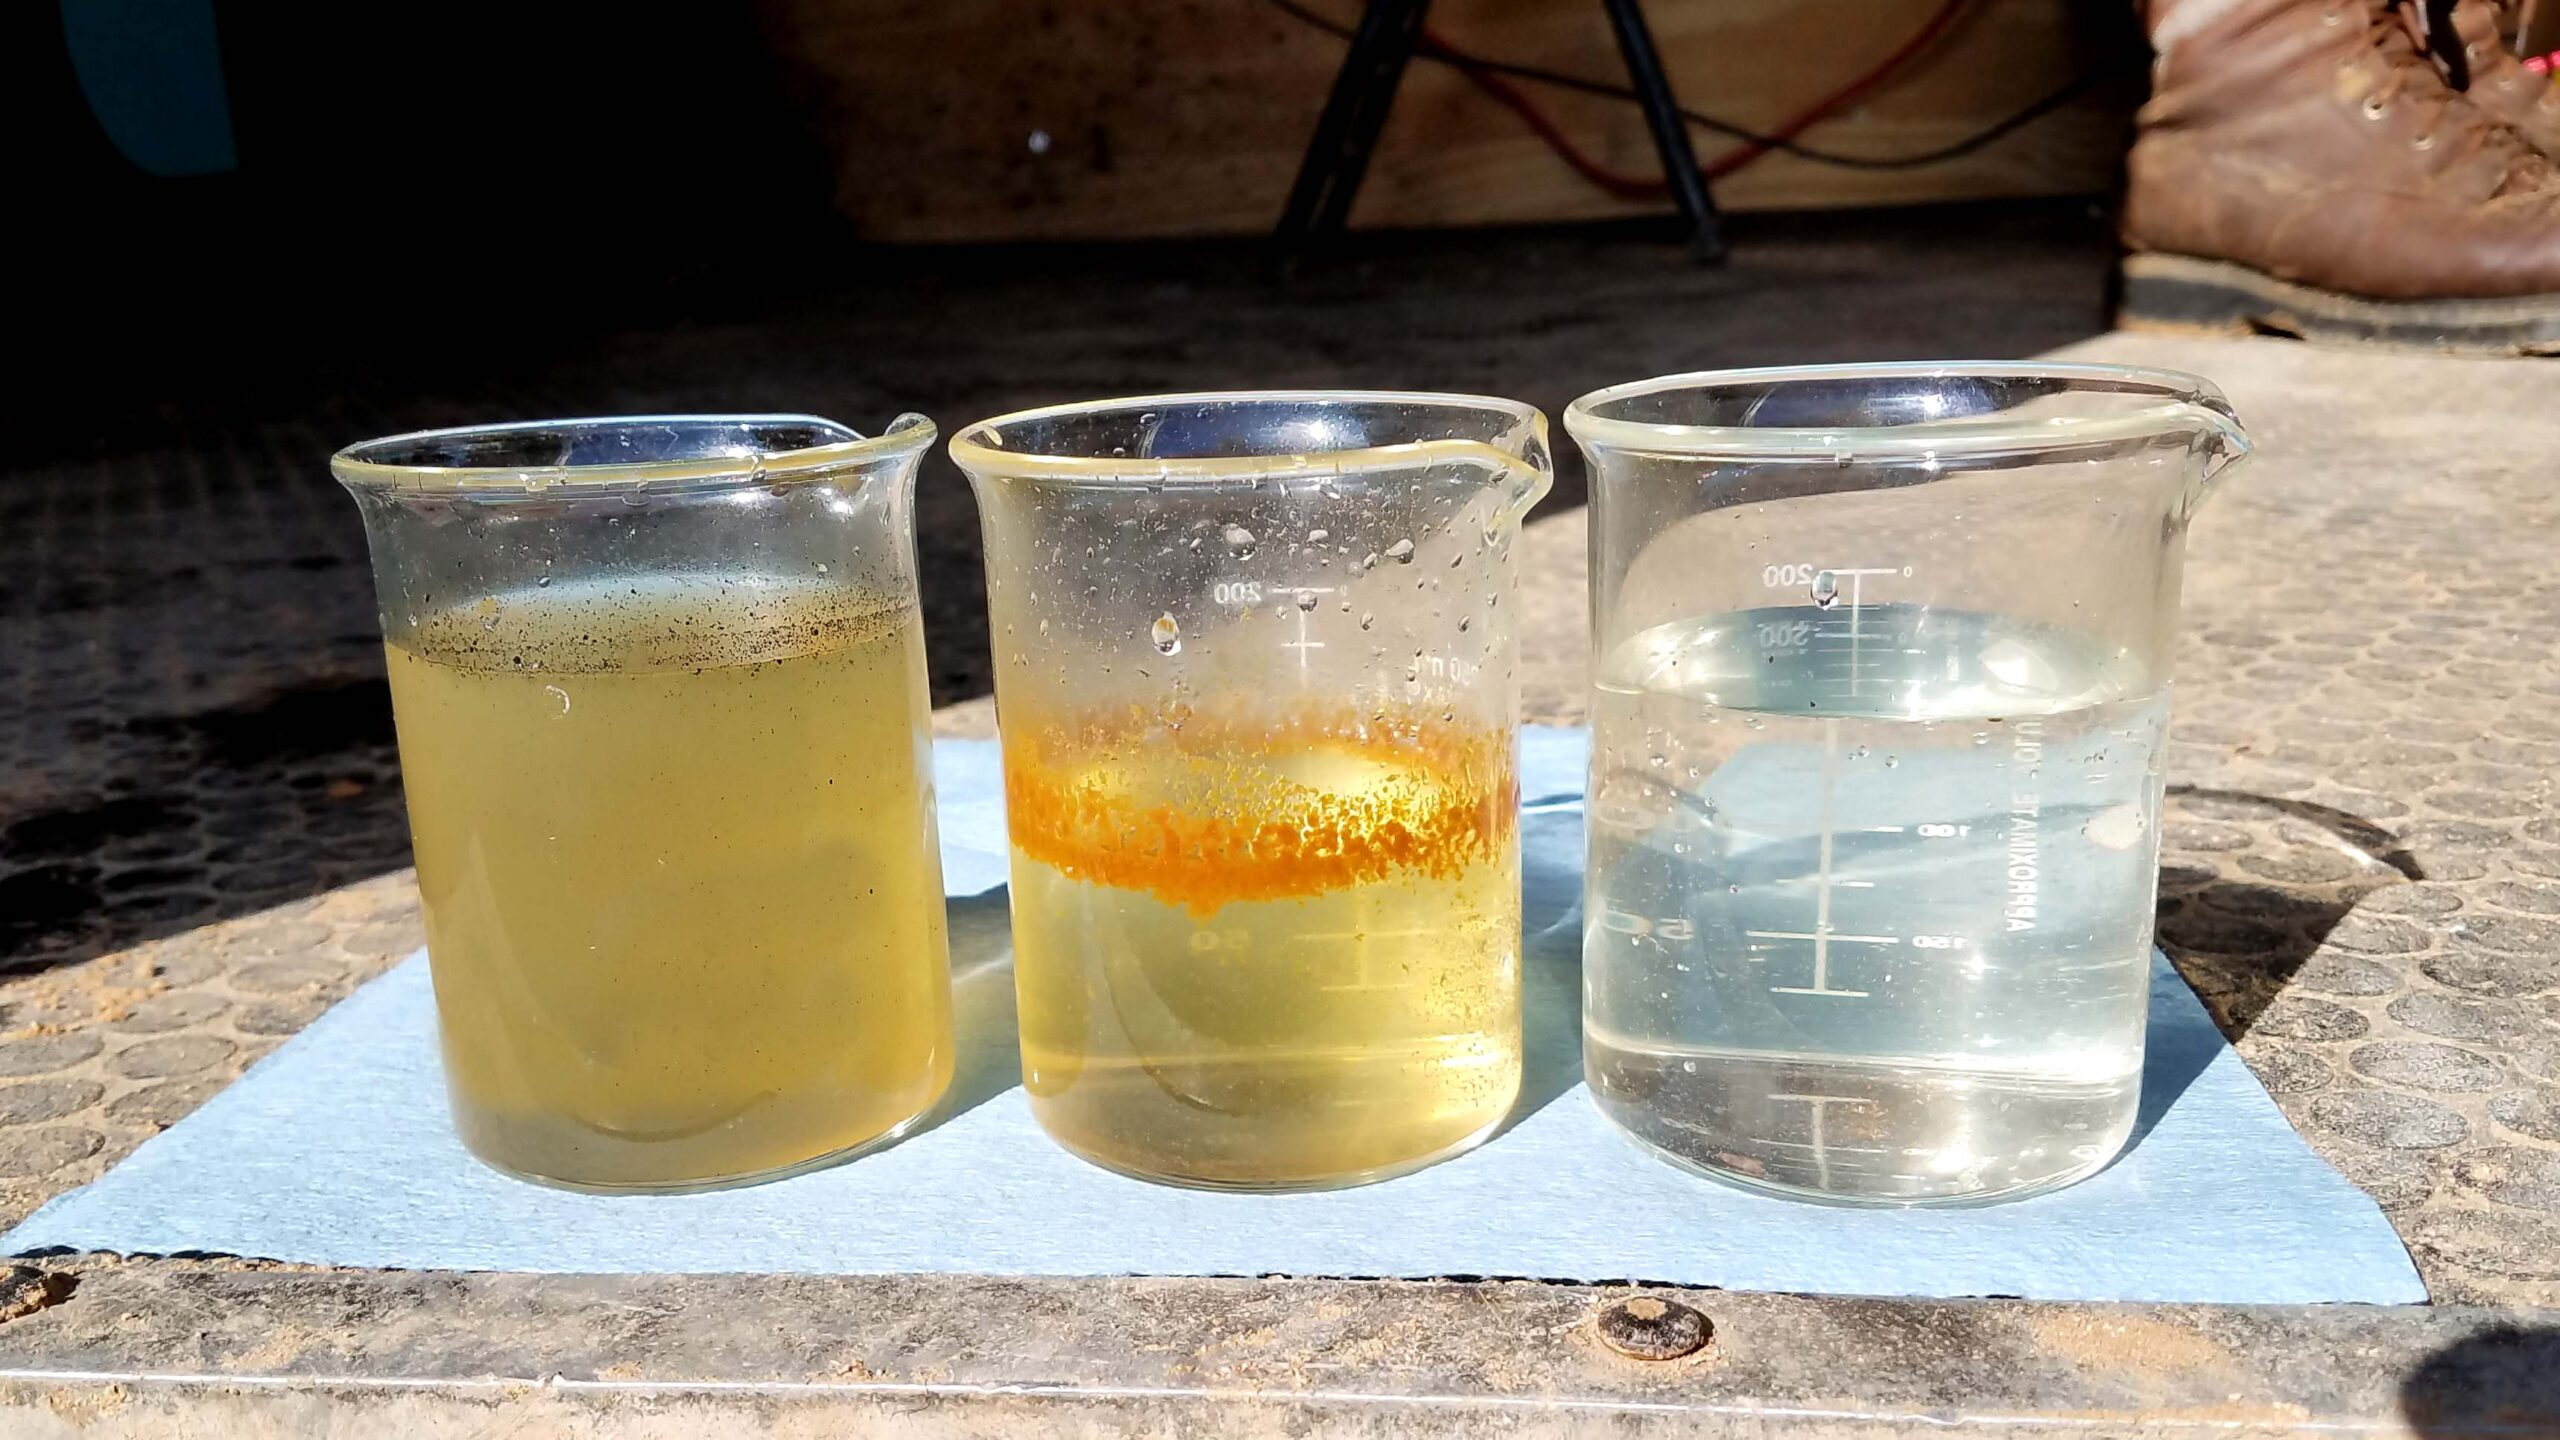 Three jars, raw to treated, left to right, sit in a PeroxyMAX trailer at a reuse site.